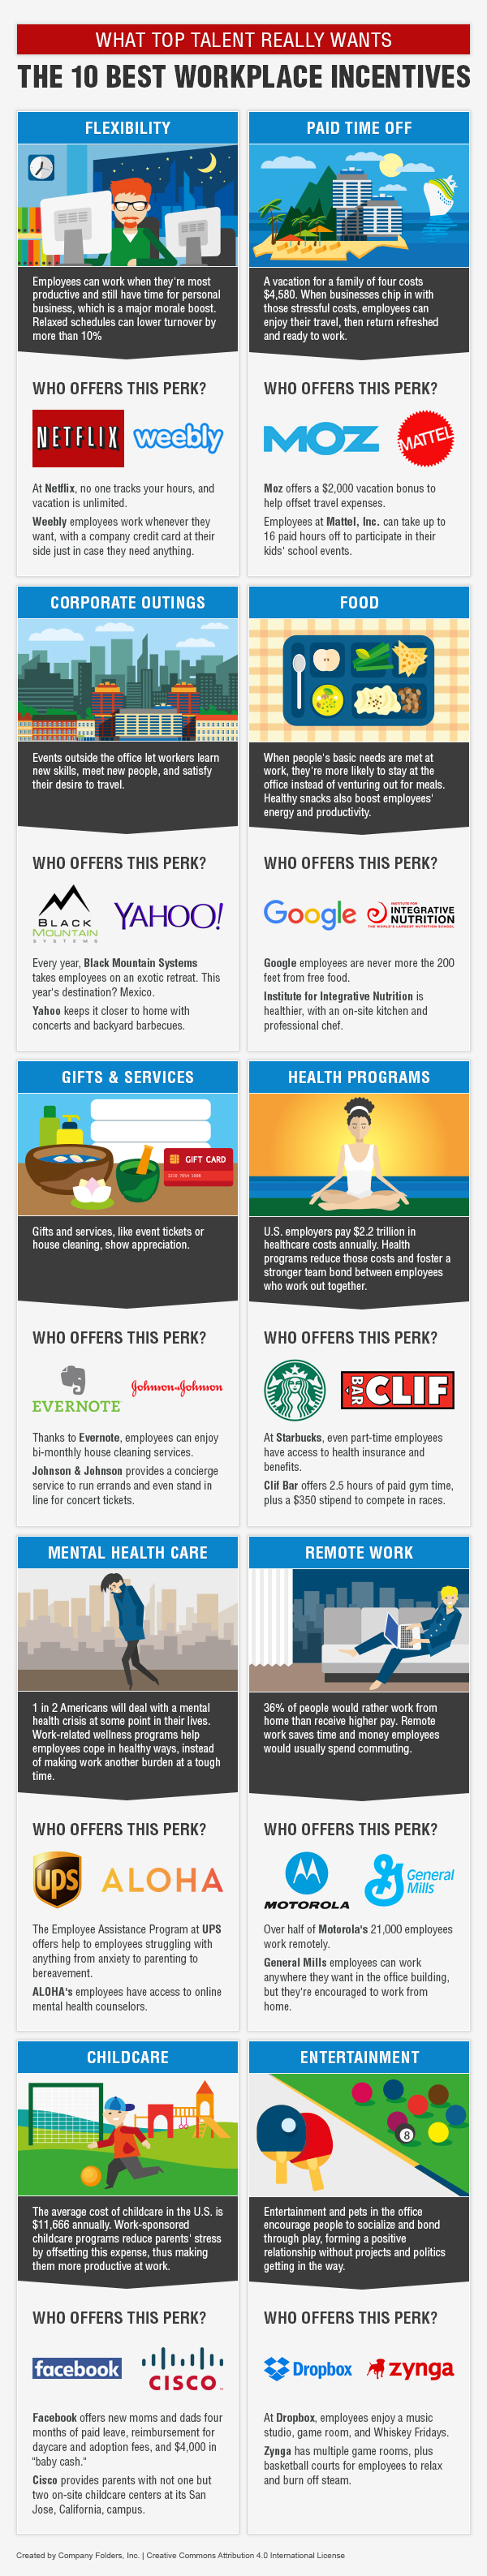 10 Employee Perks To Attract Top Creative Talent - infographic